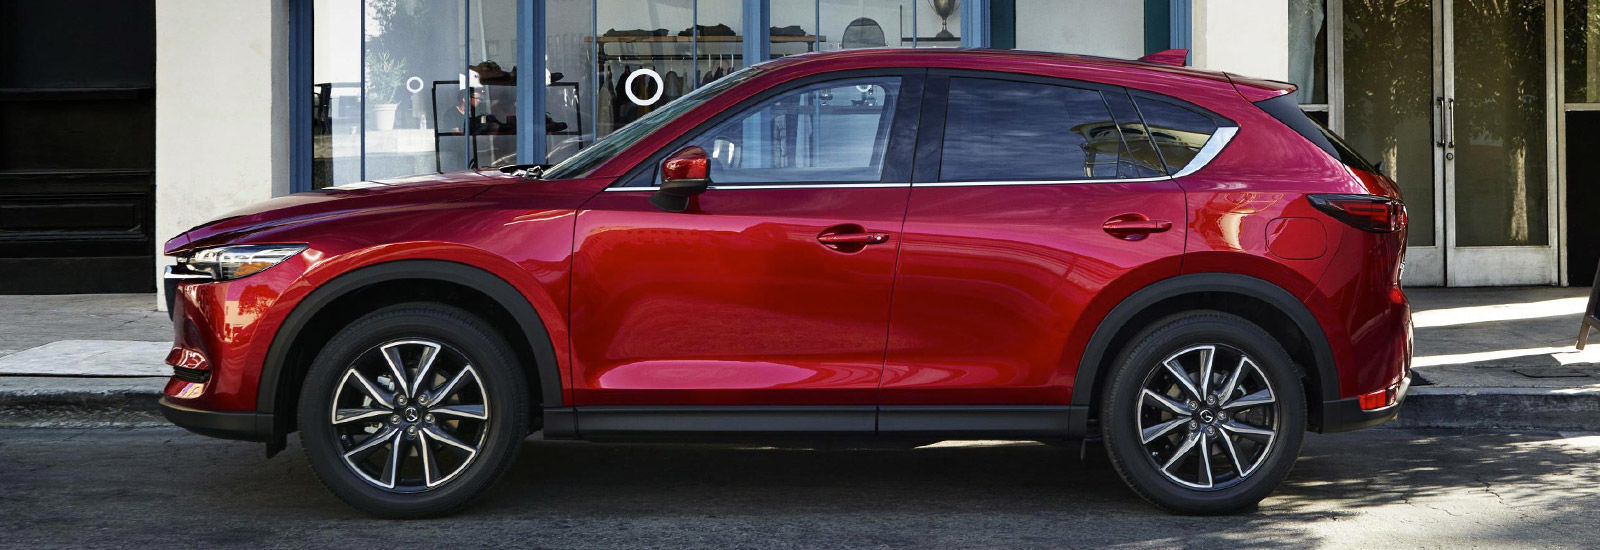 new mazda cx-5 price, specs and release date | carwow